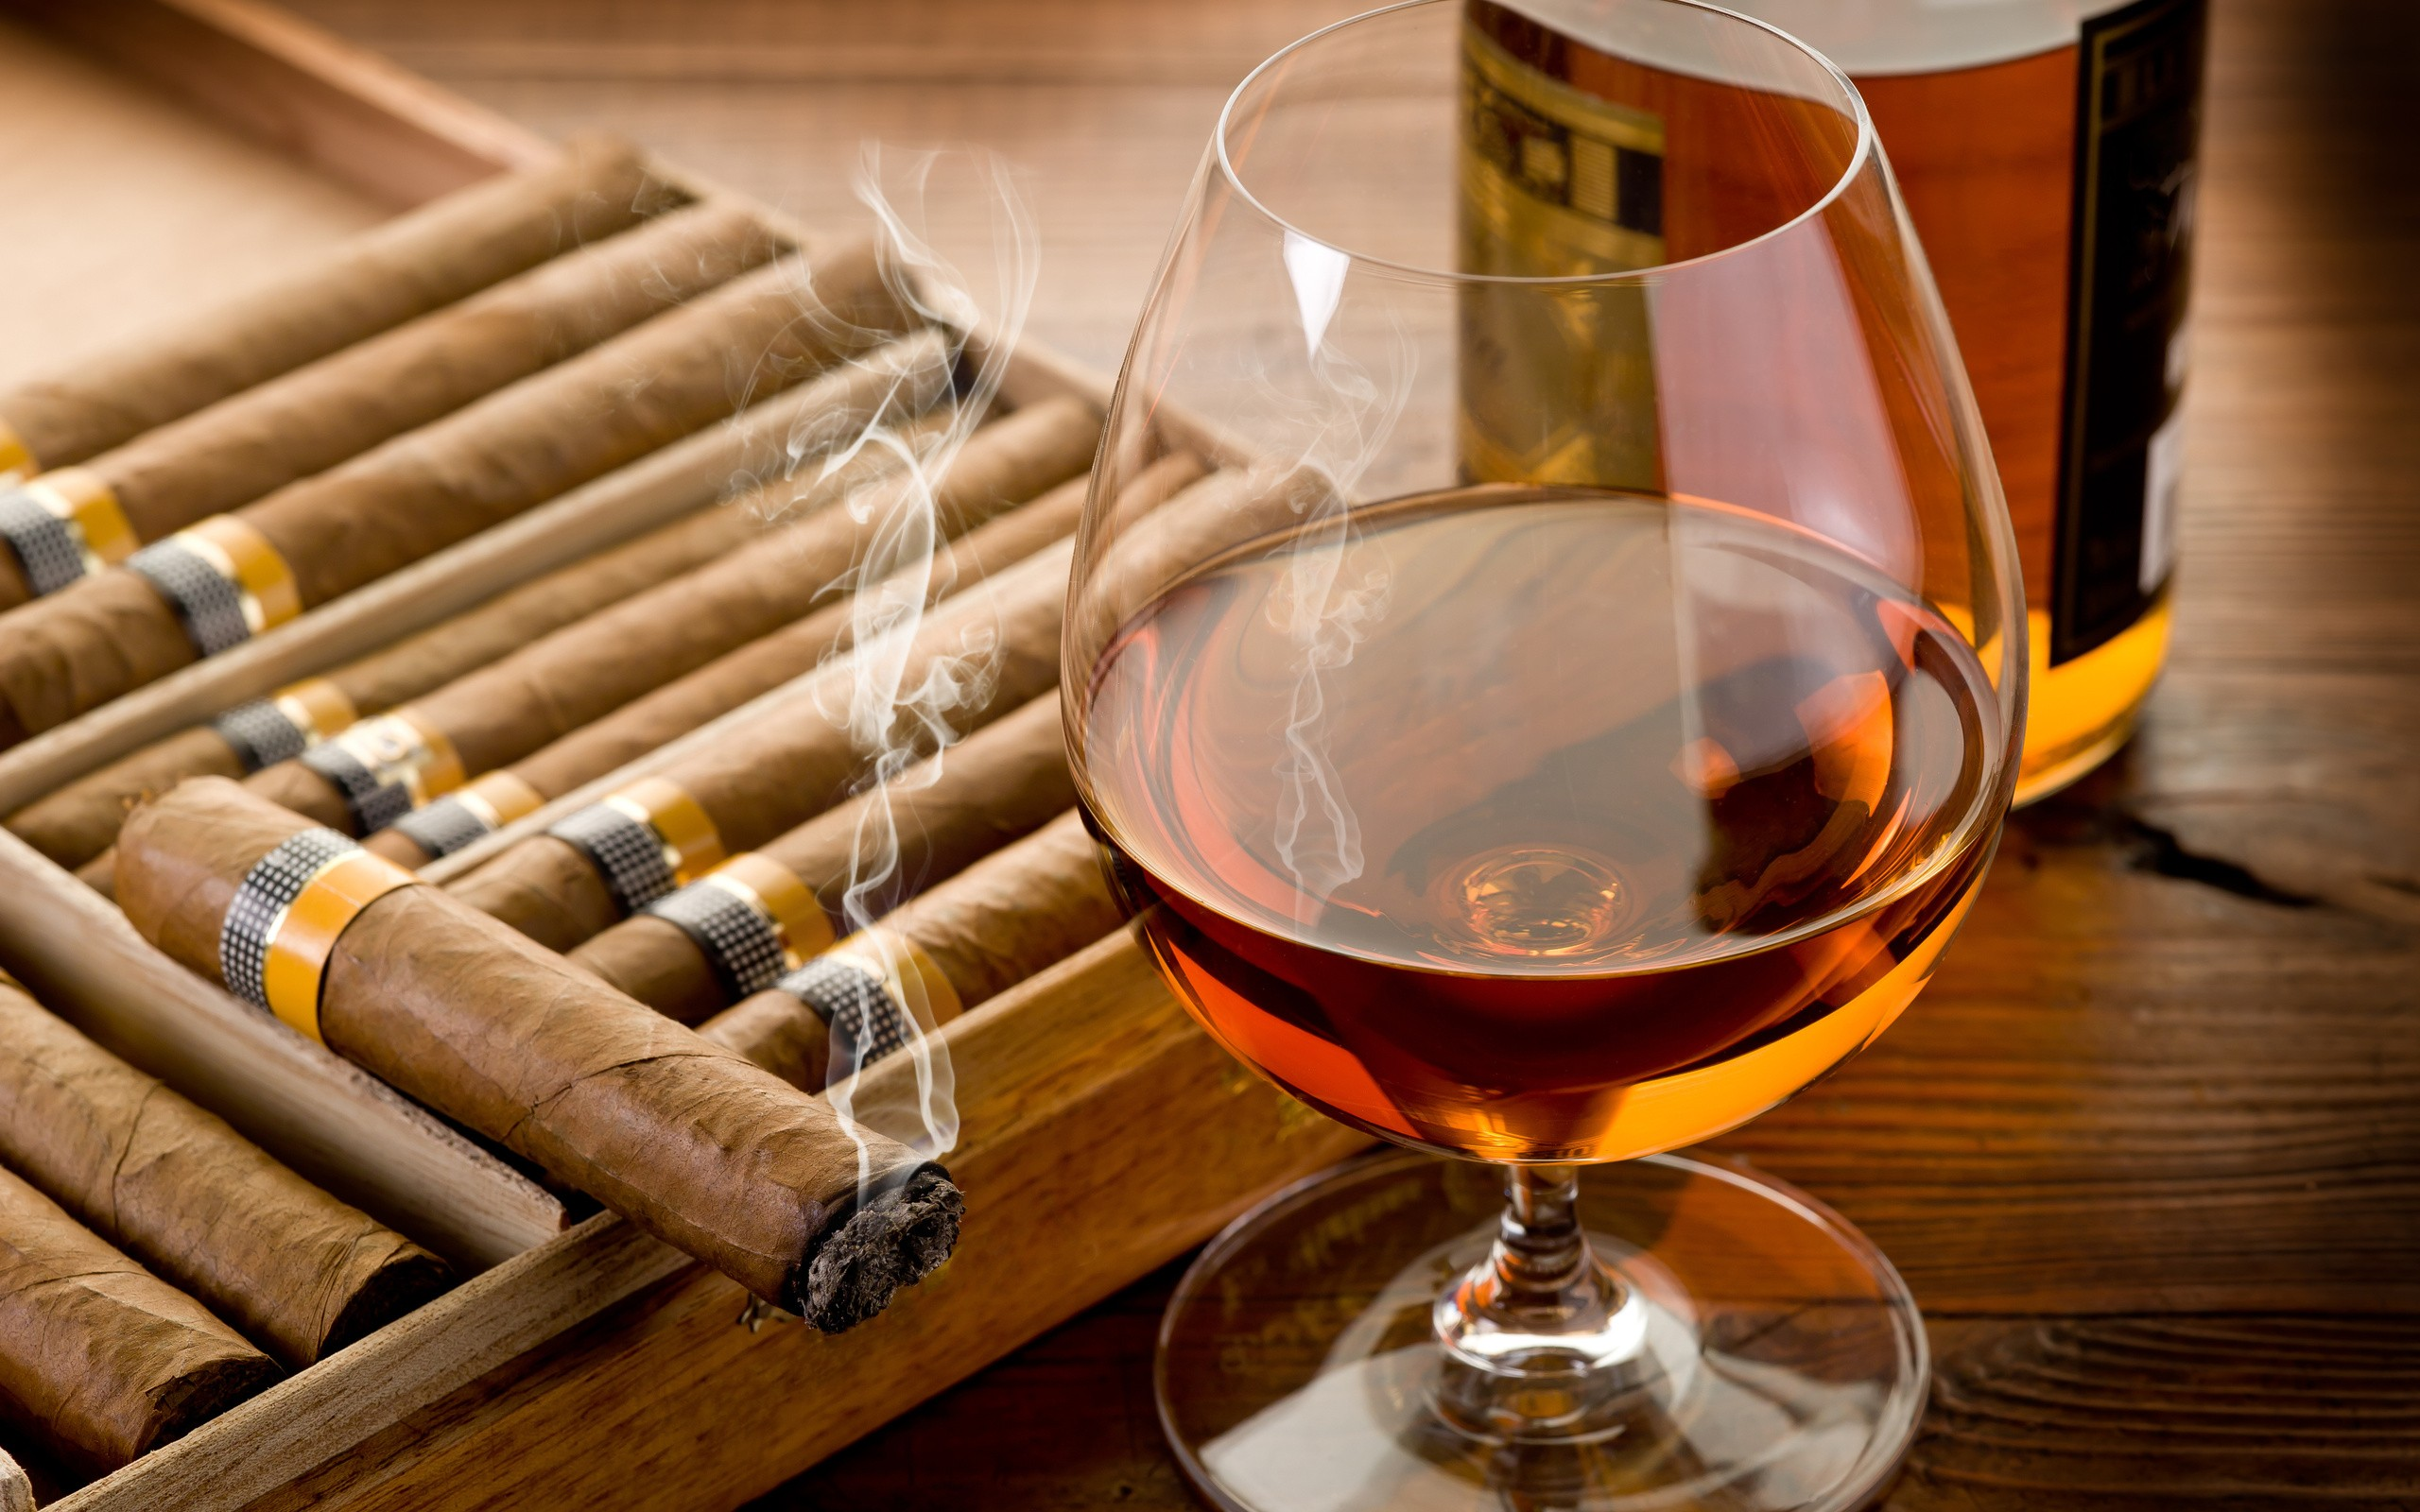 Vino y cigarrillos hd 2560x1600   imagenes   wallpapers gratis 2560x1600